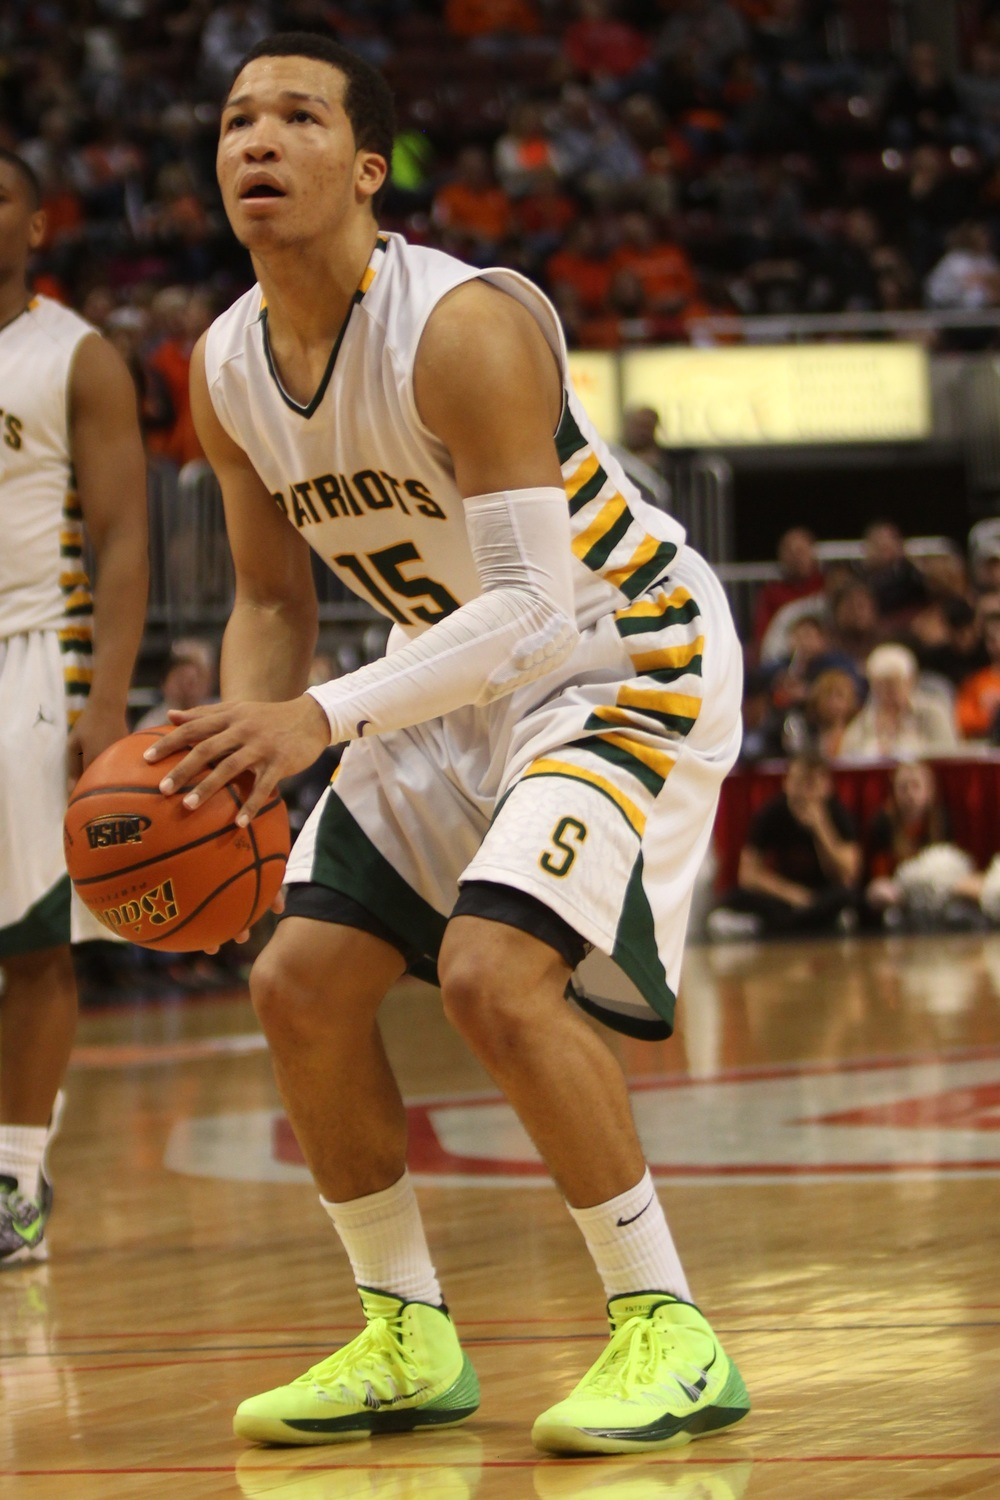 Jalen Brunson at the 2014 IHSA final four